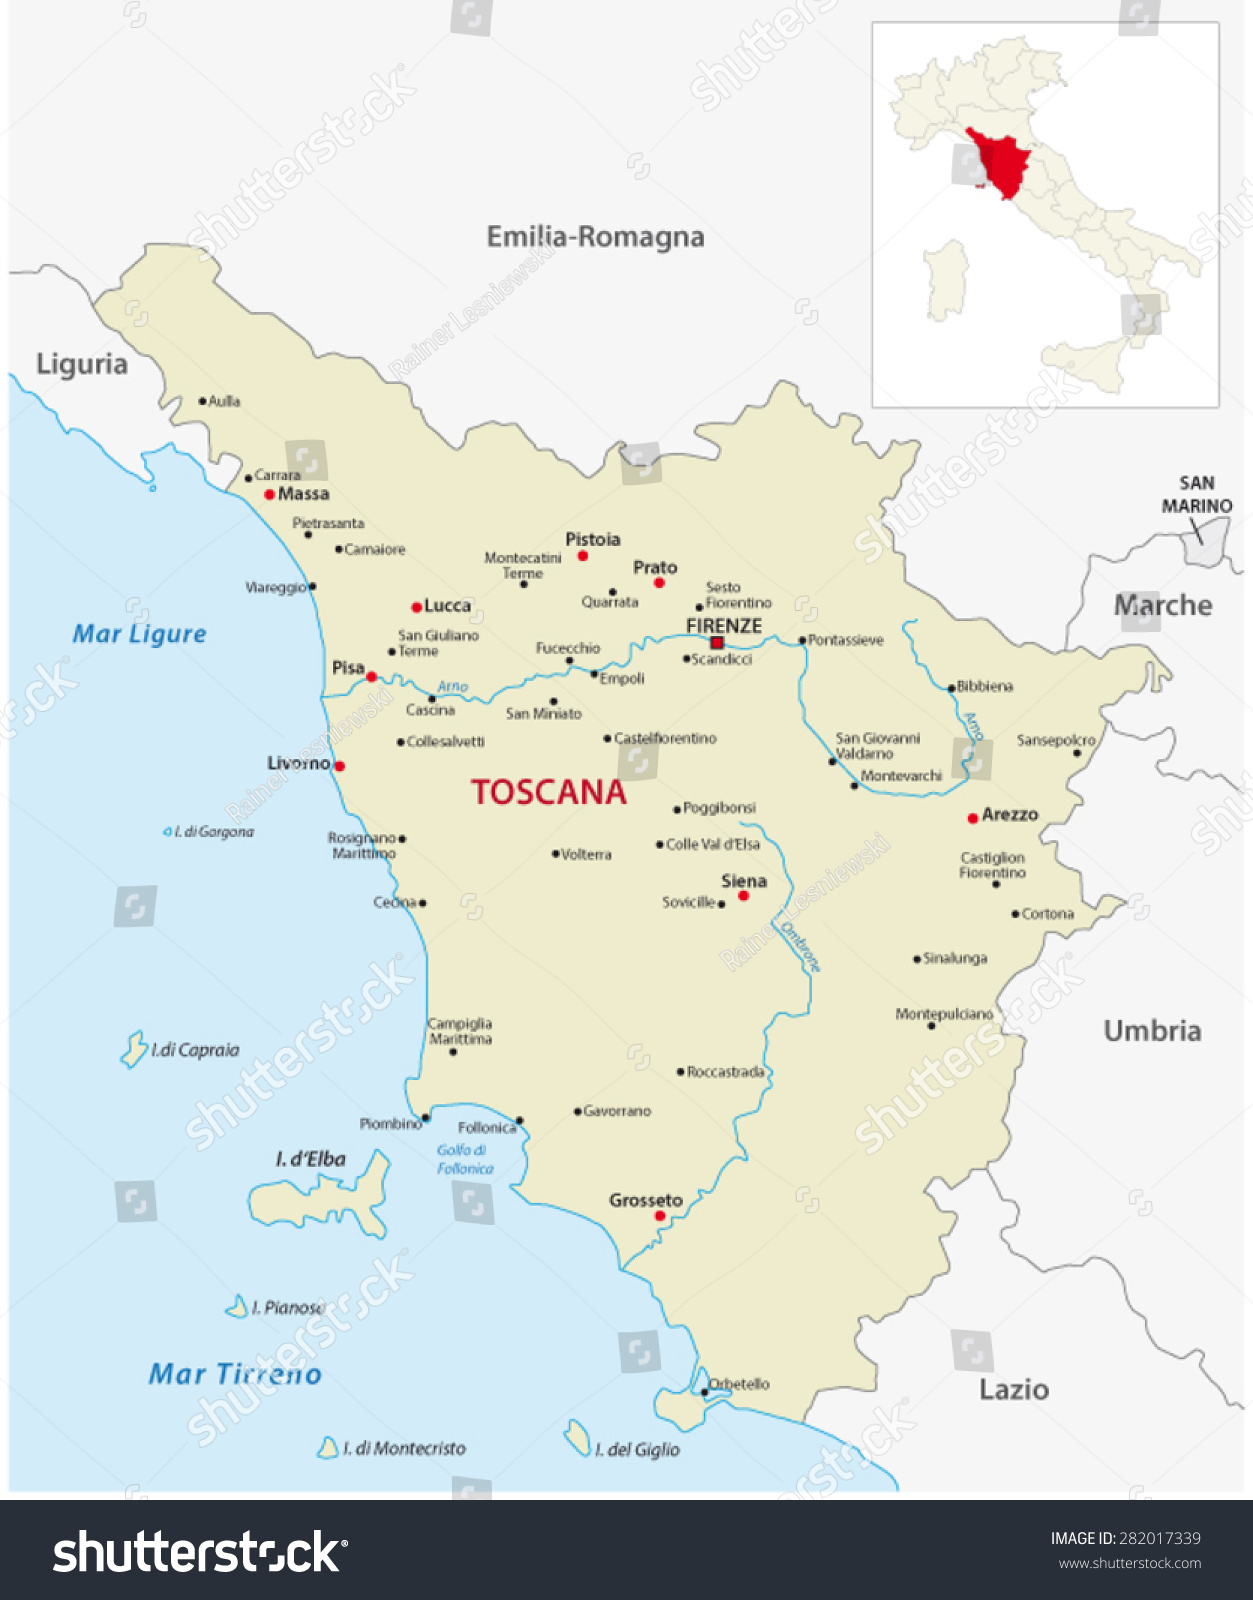 Tuscany Map Outline Map Italy Stock Vector Shutterstock - Tuscany region map